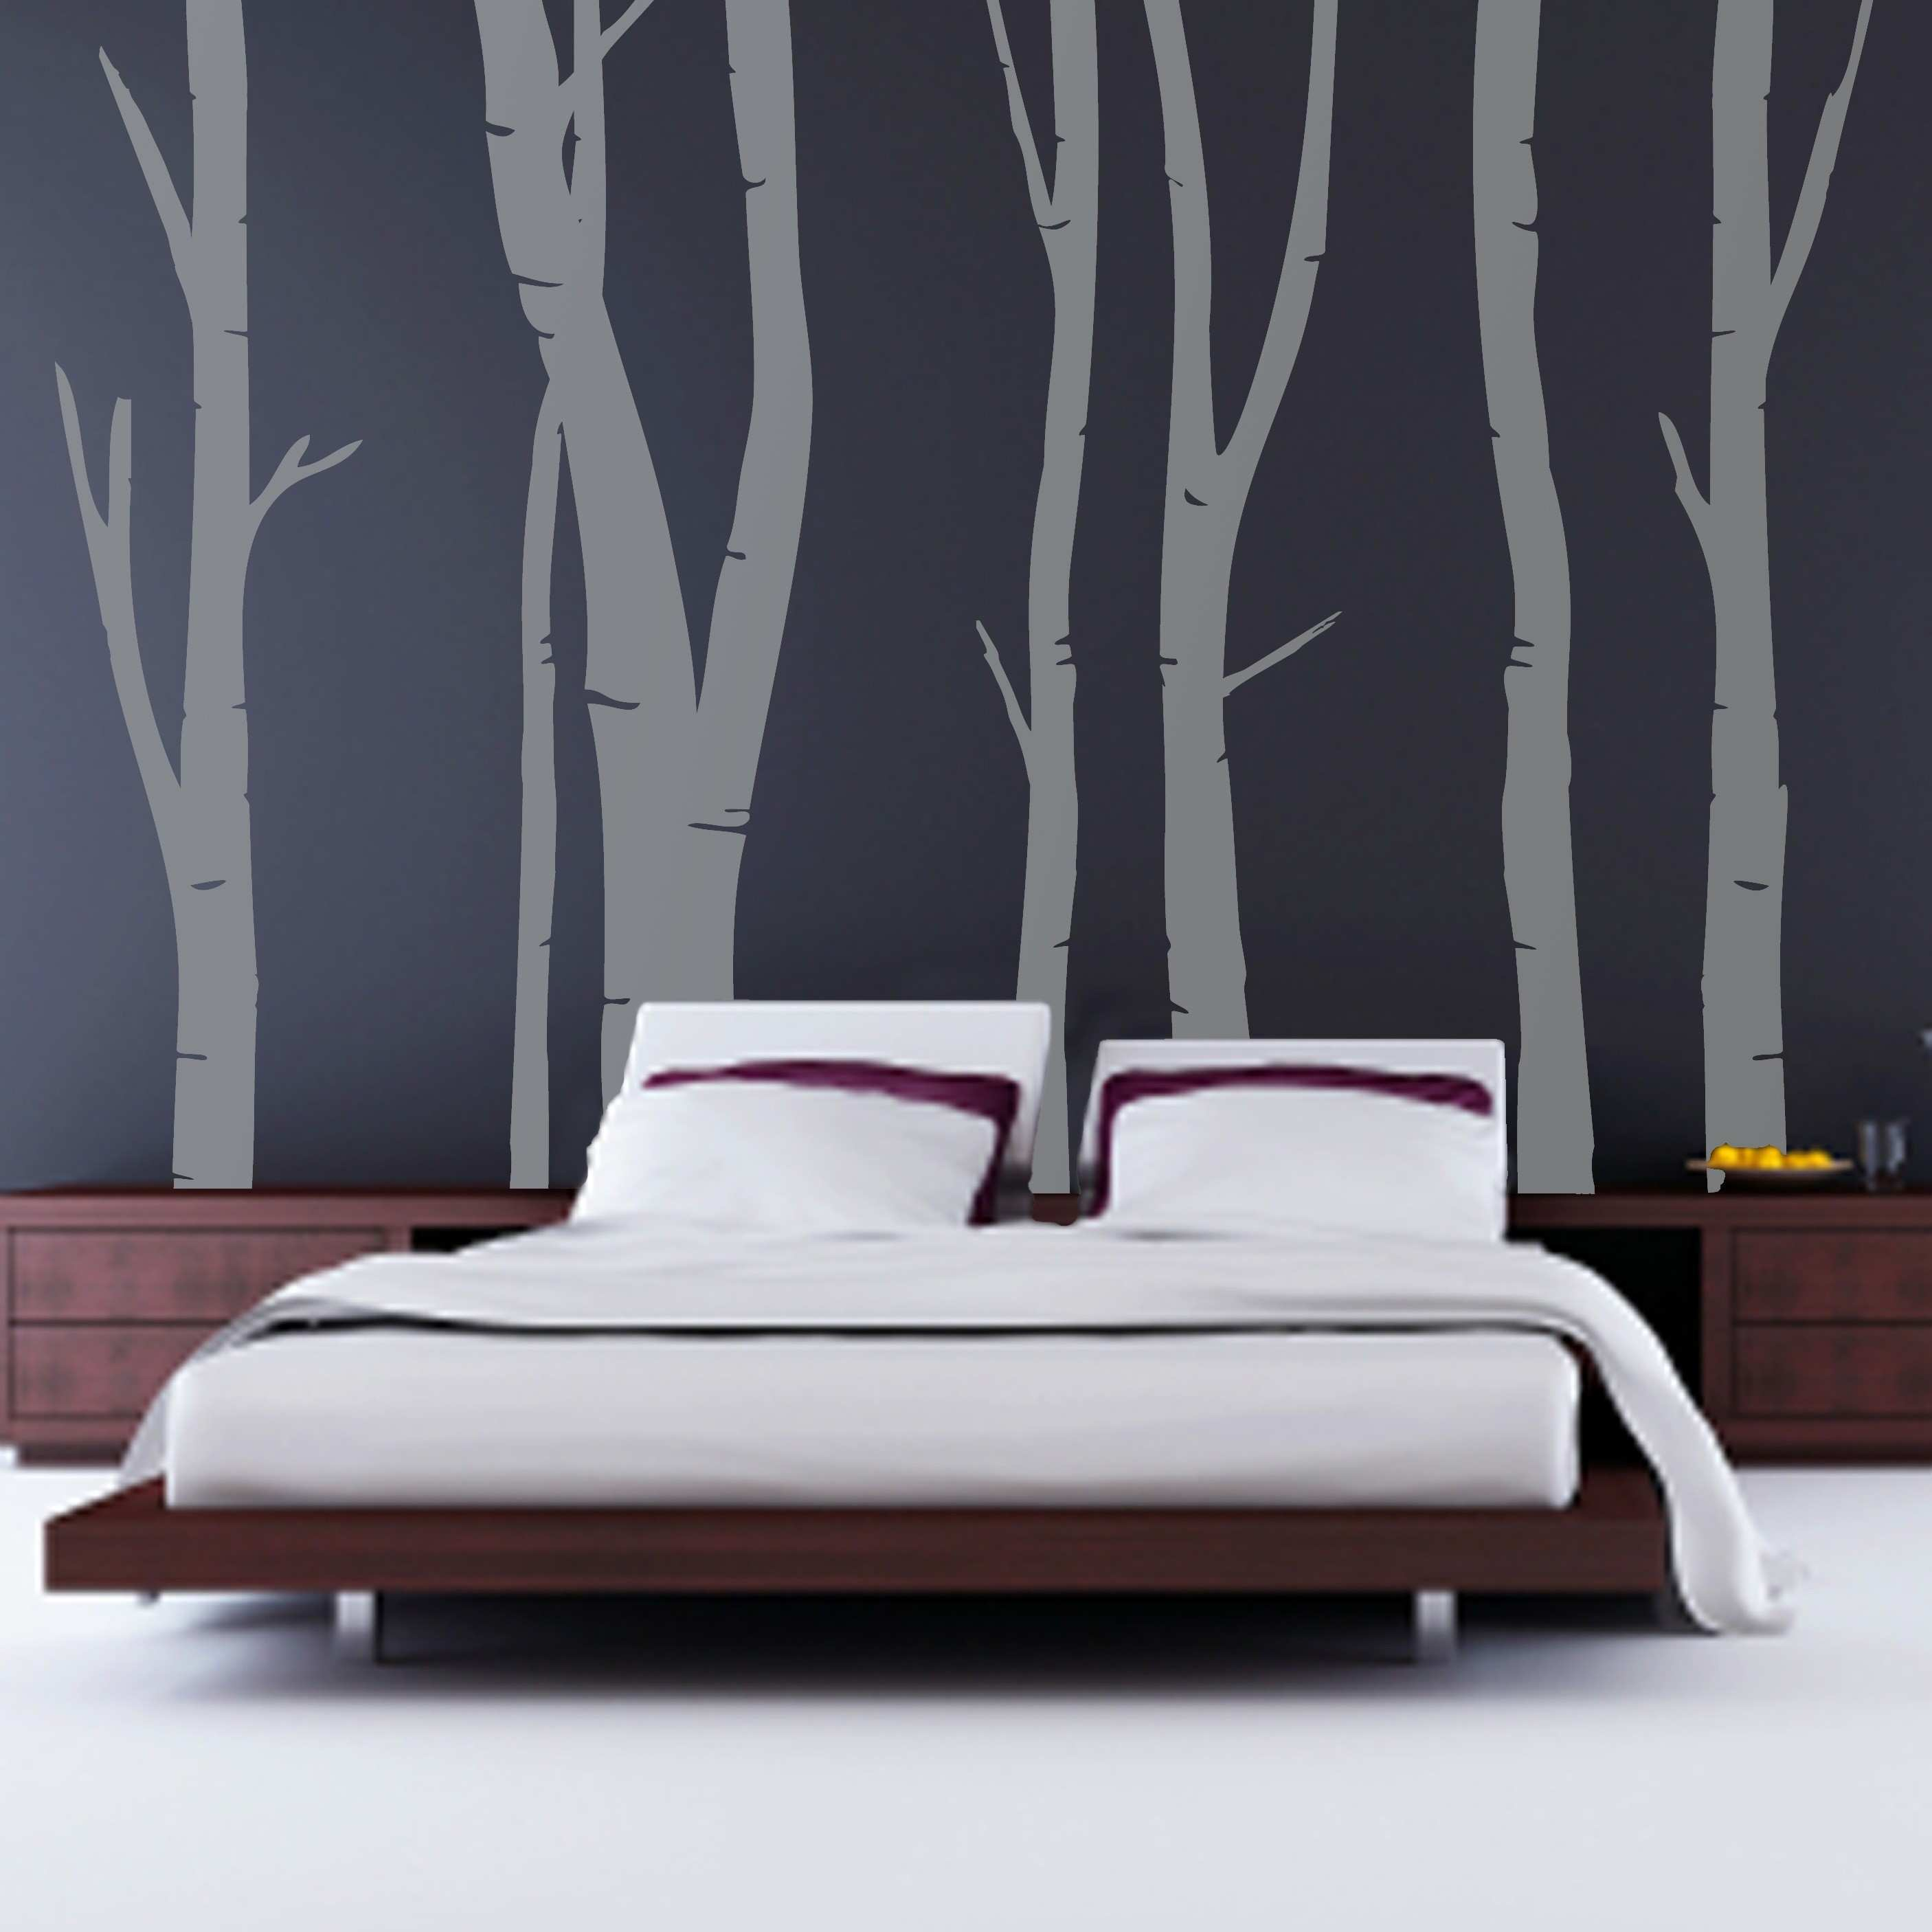 46 Luxury Wall Art Stickers